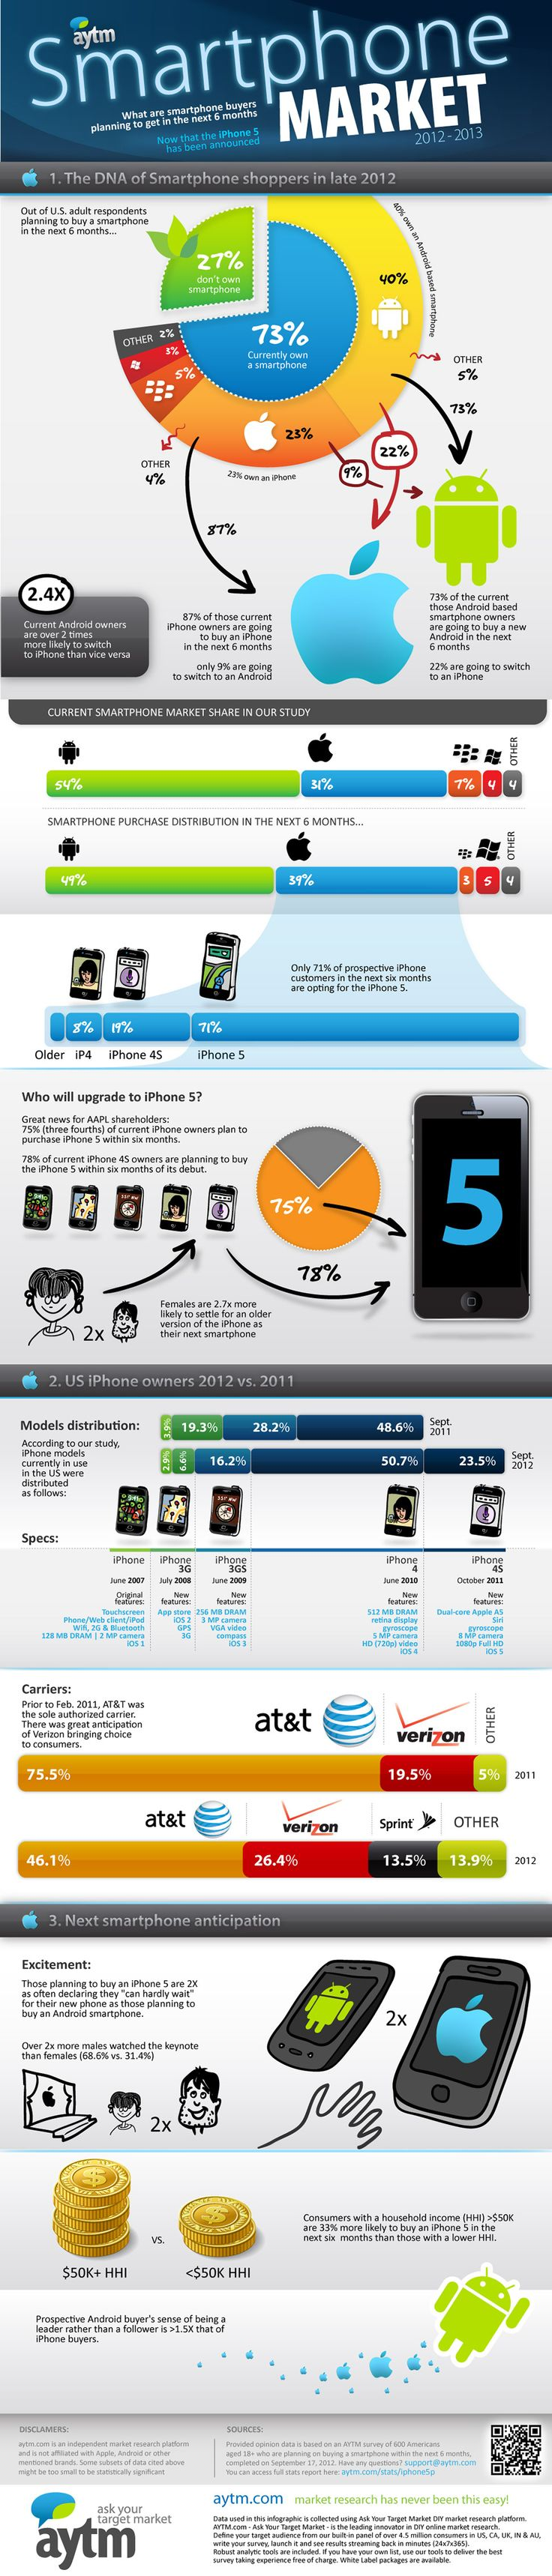 How the iPhone 5 Has Impacted the Smartphone Market